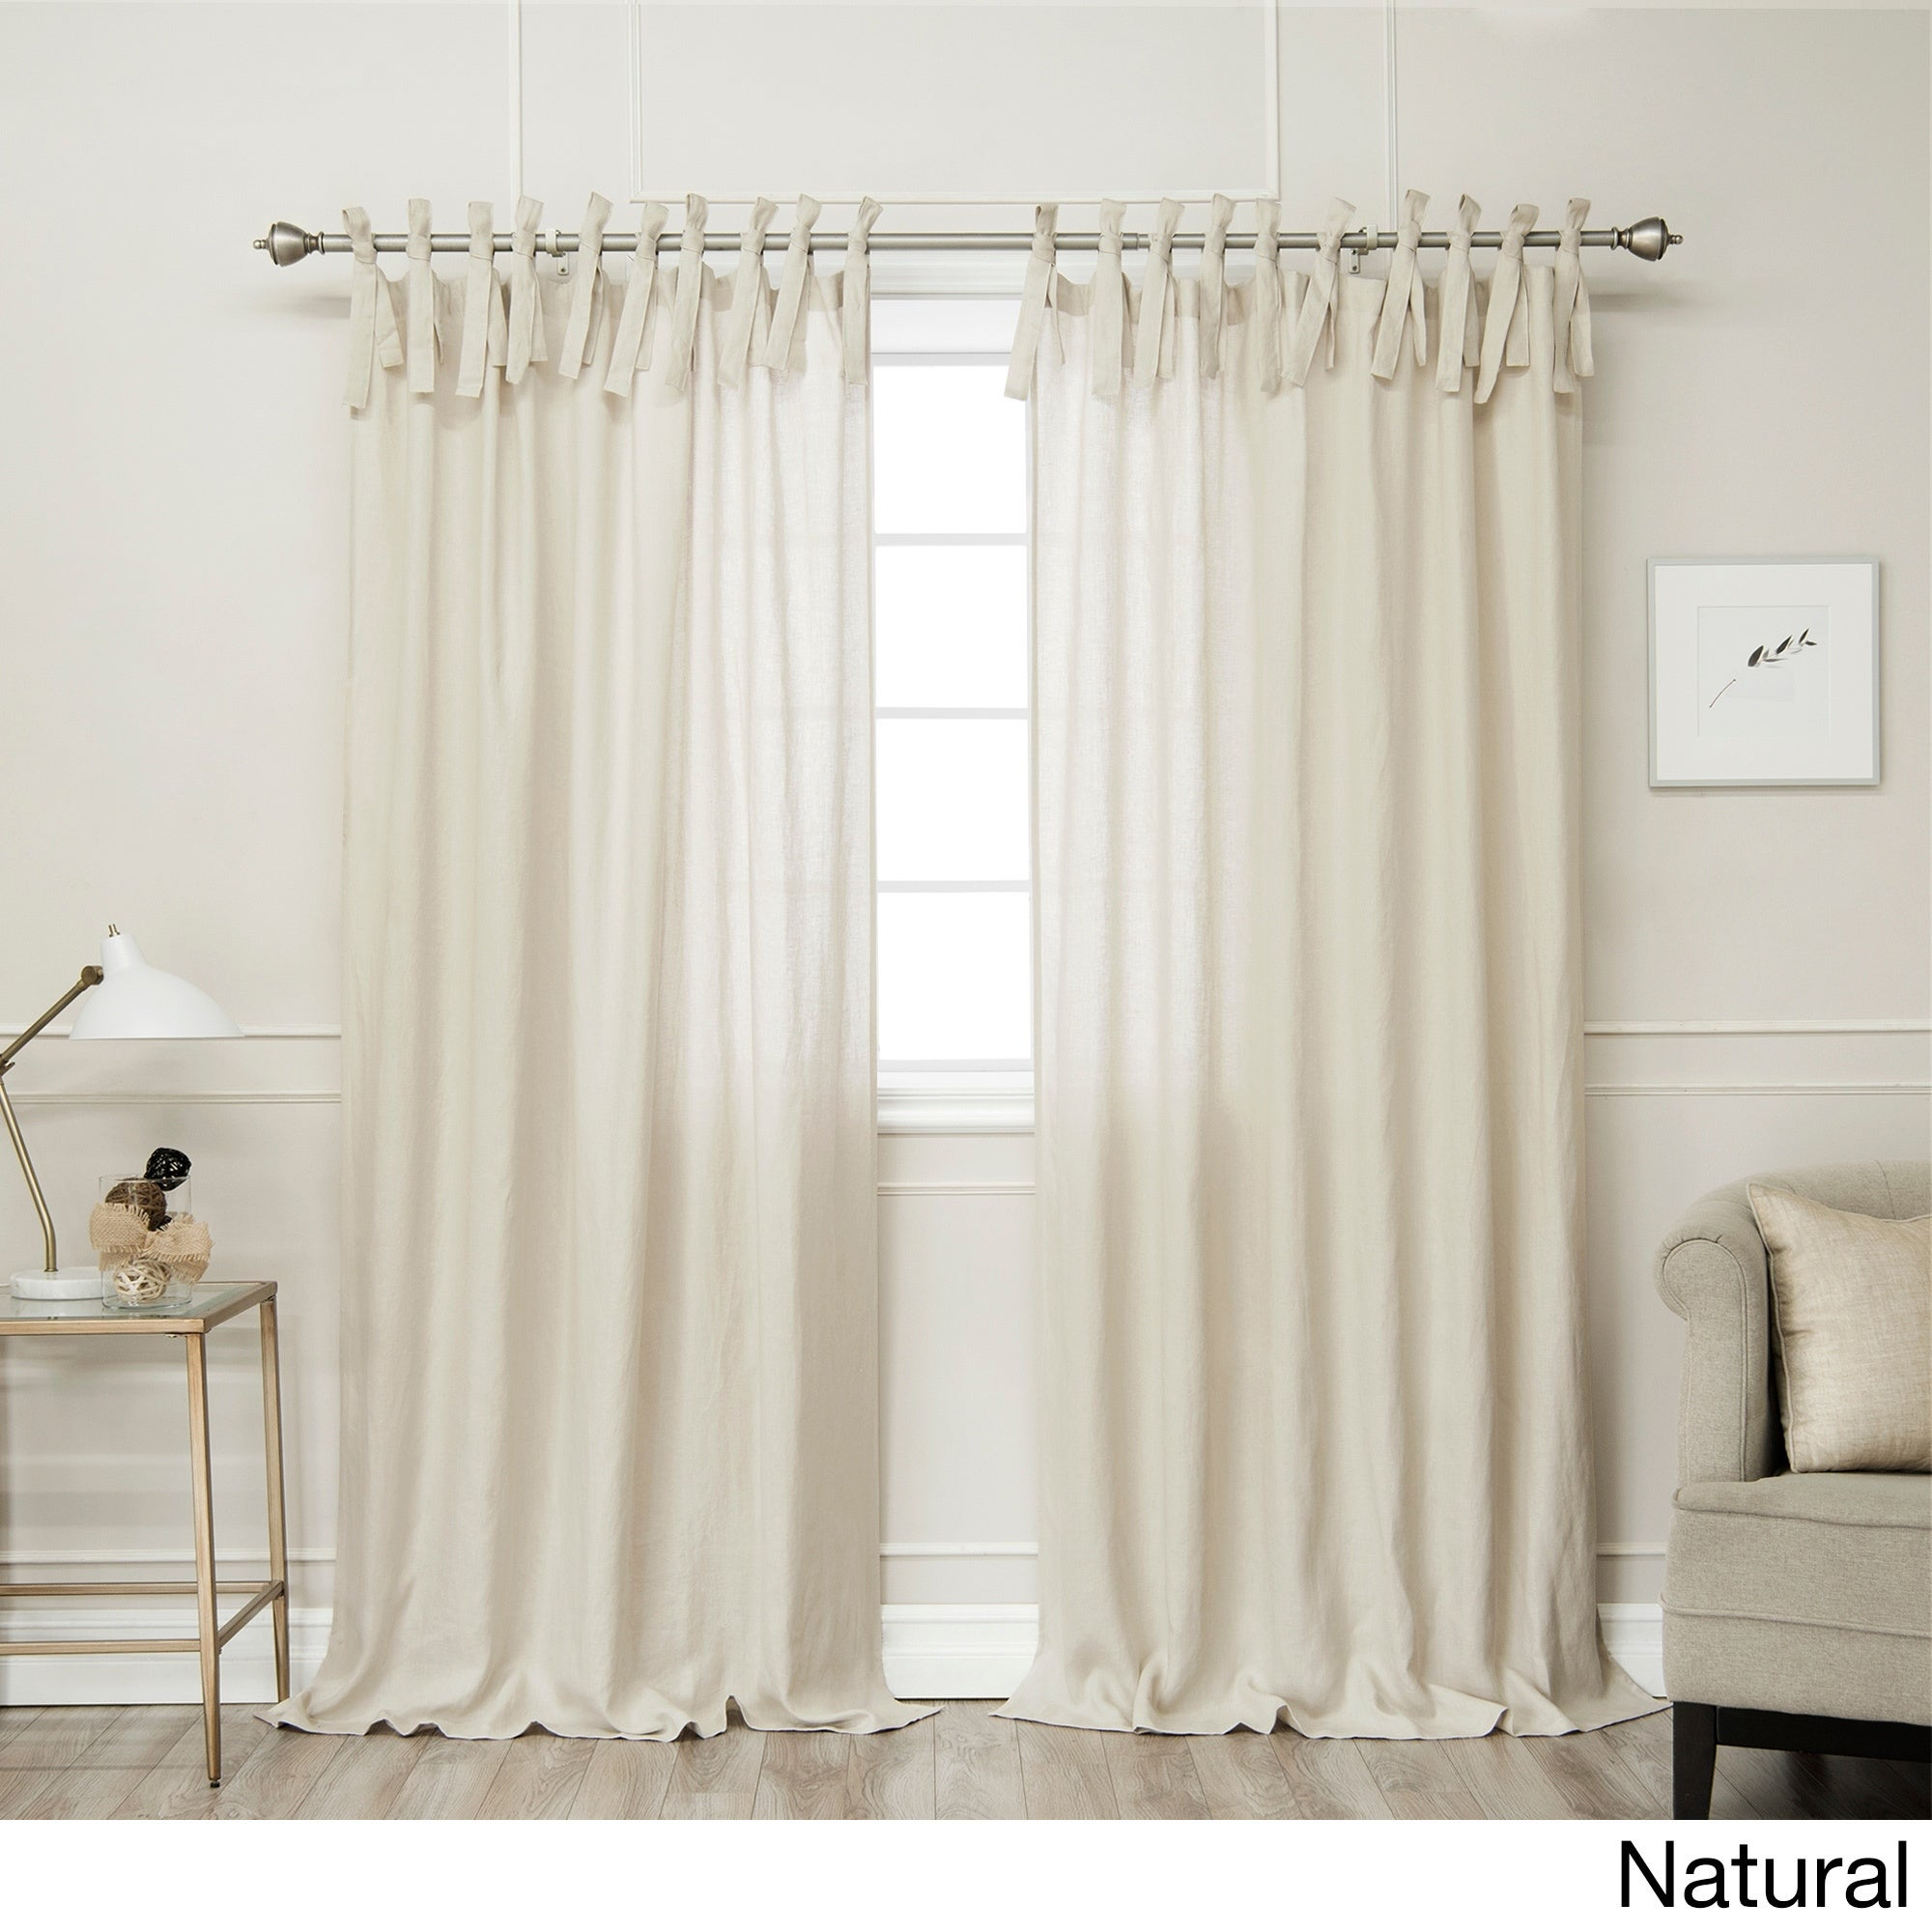 of measure ribbon up drapes once double height top the both is no over next cut and accordingly that your will sew diy tie curtains drape sides